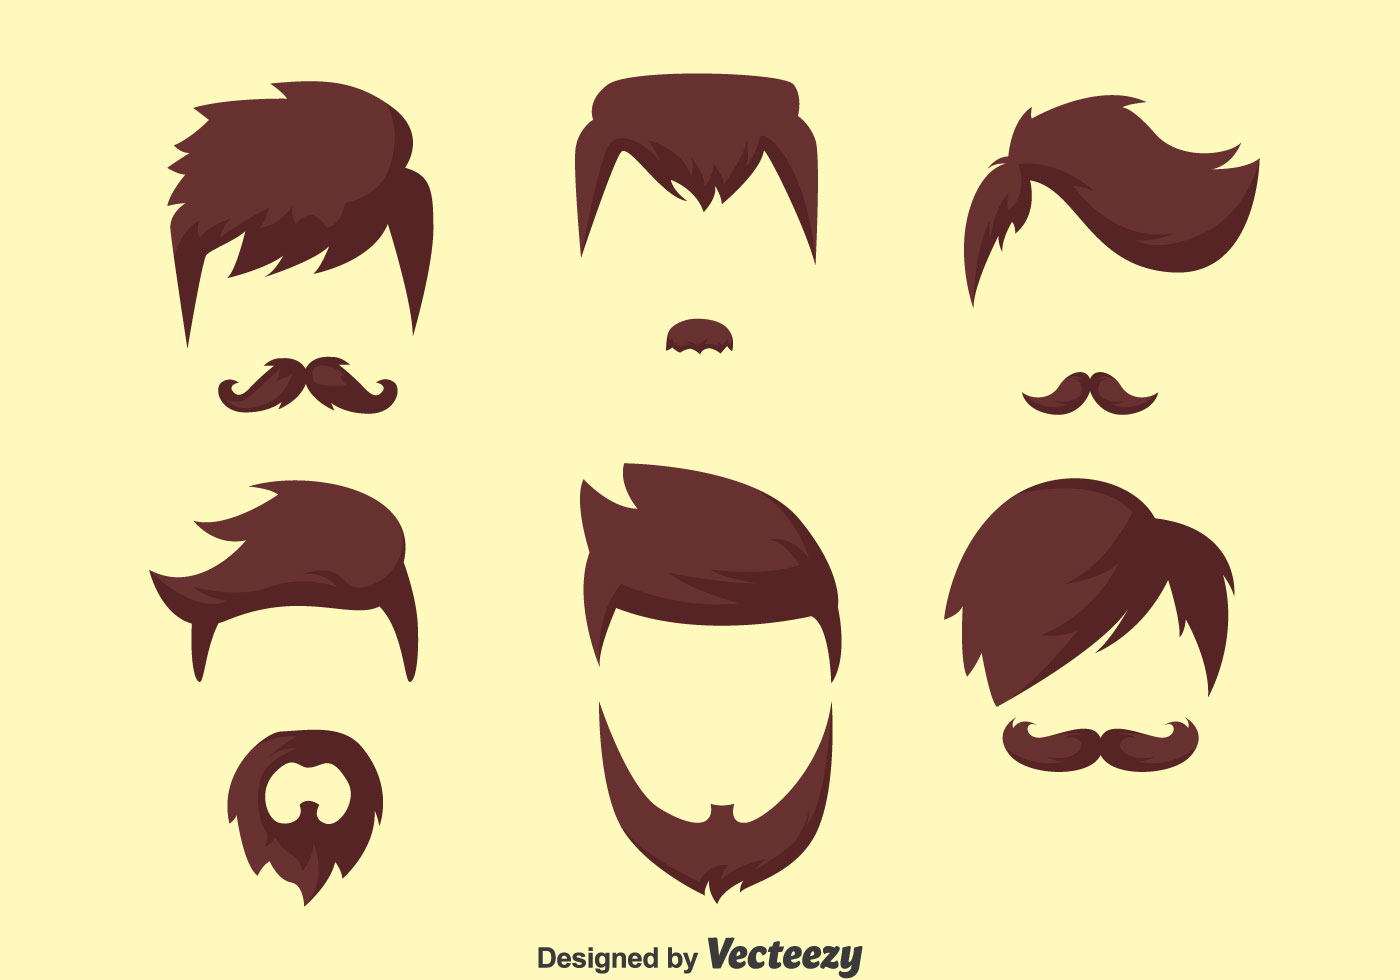 man hair style collection download free vector art stock graphics rh vecteezy com vector hair test vector haircut